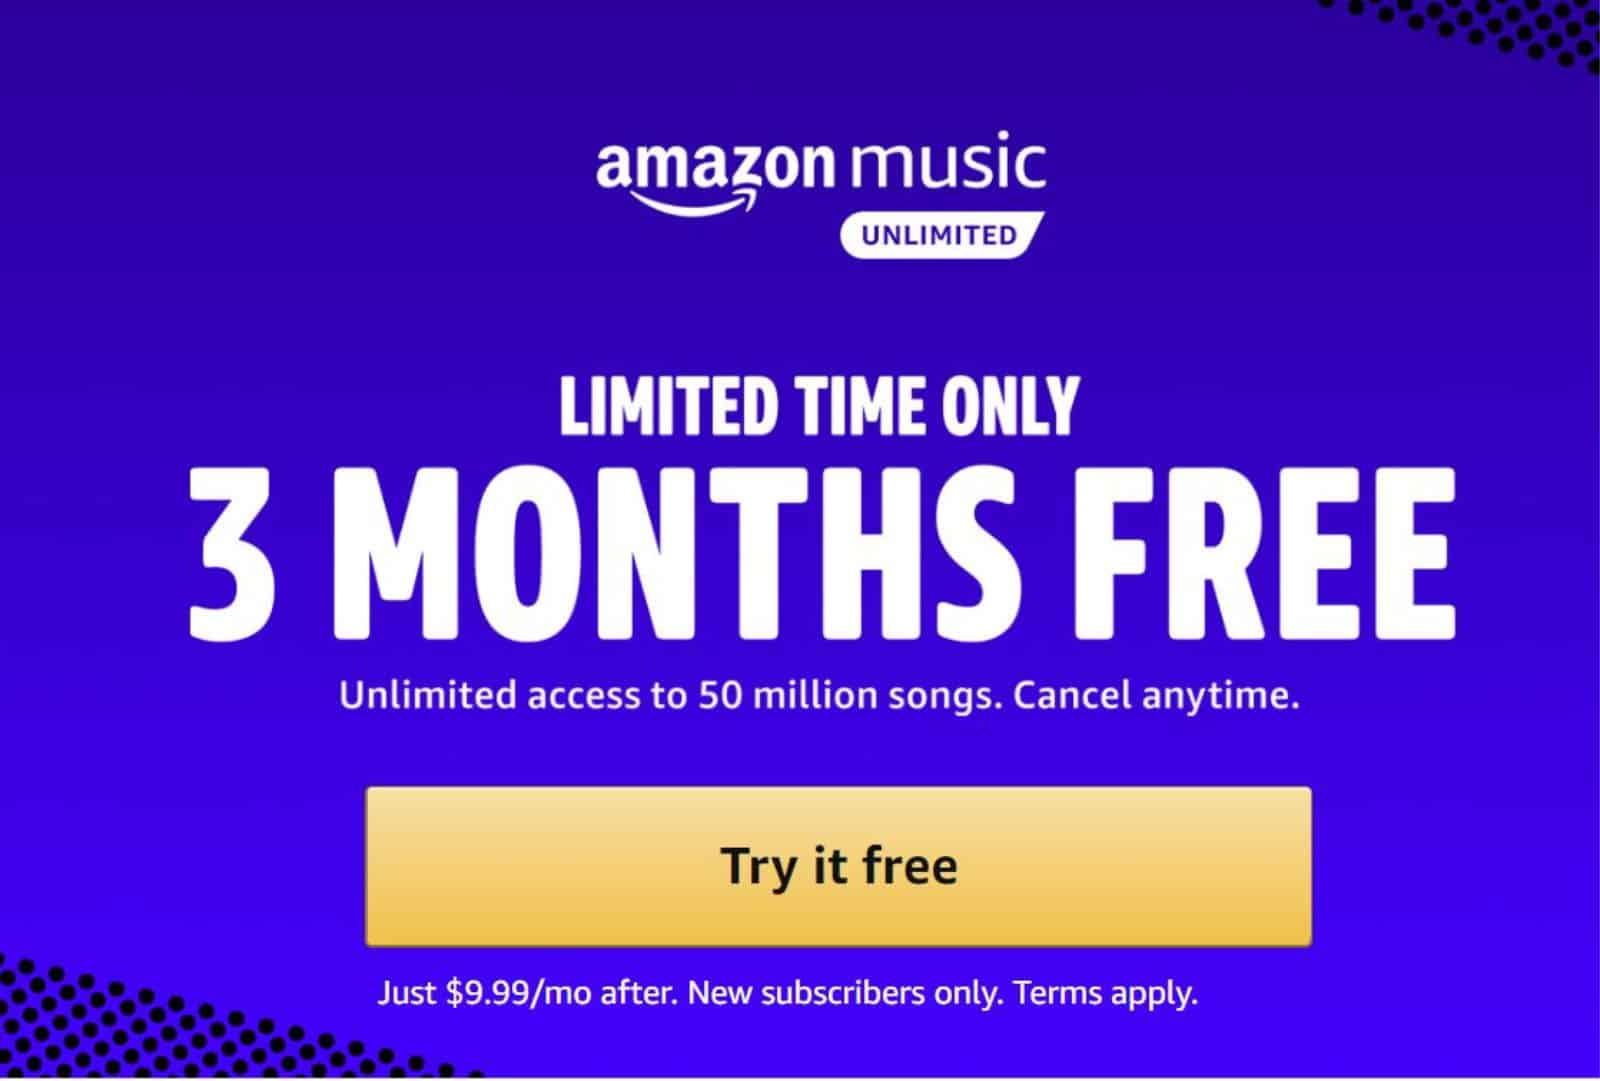 amazon music unlimited deal AH